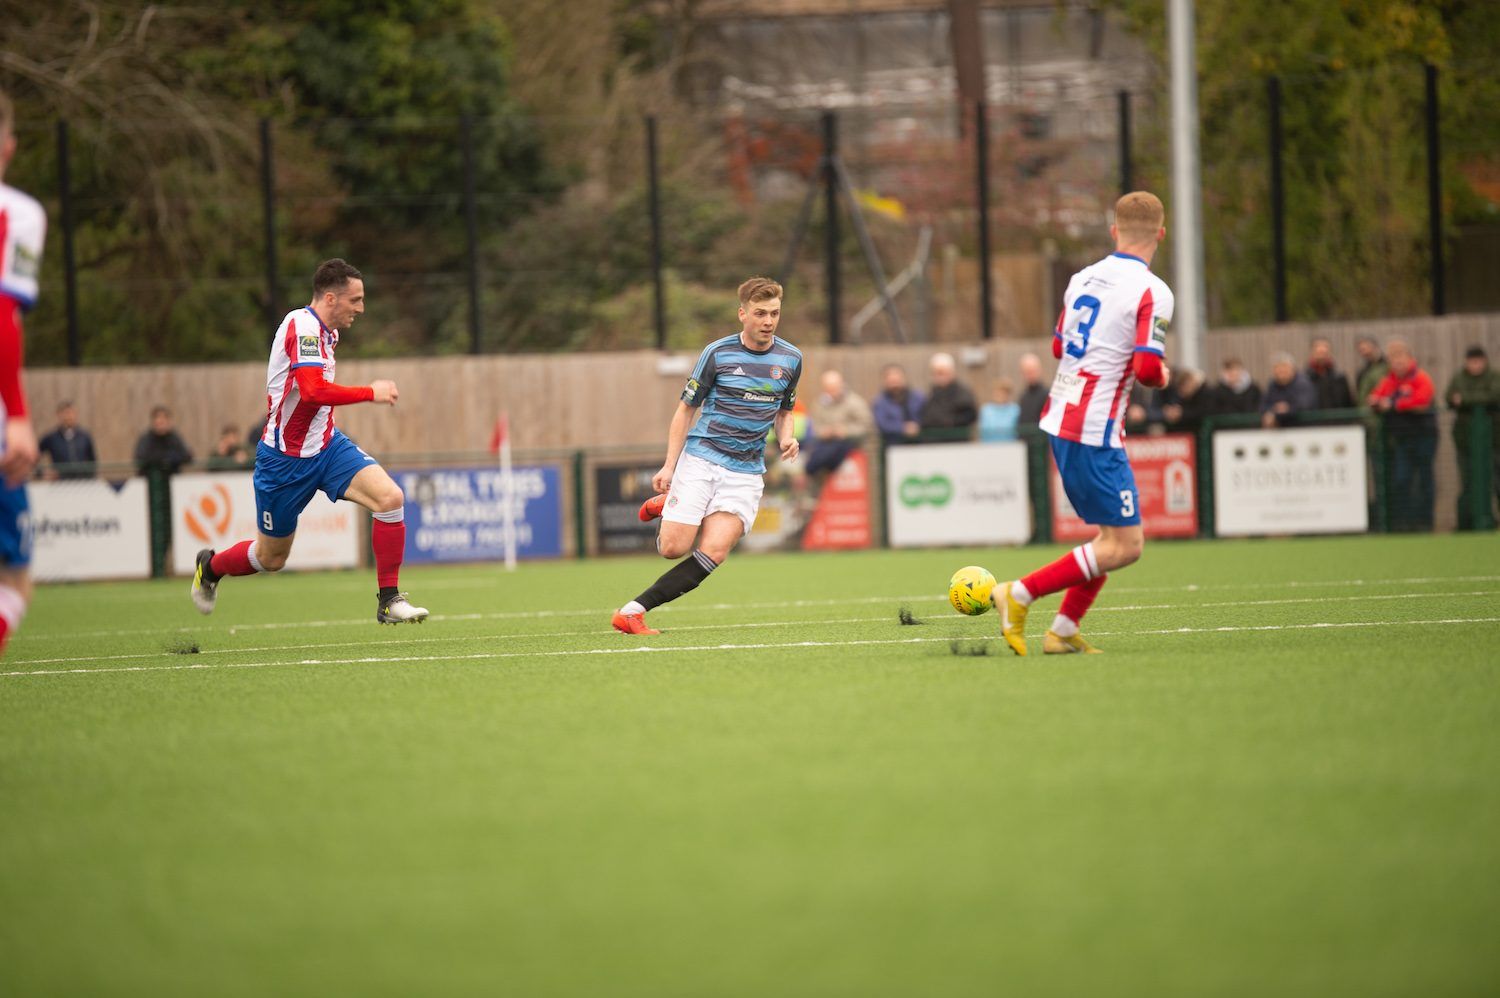 HIGHLIGHTS: Dorking 3-0 Worthing [A] – League